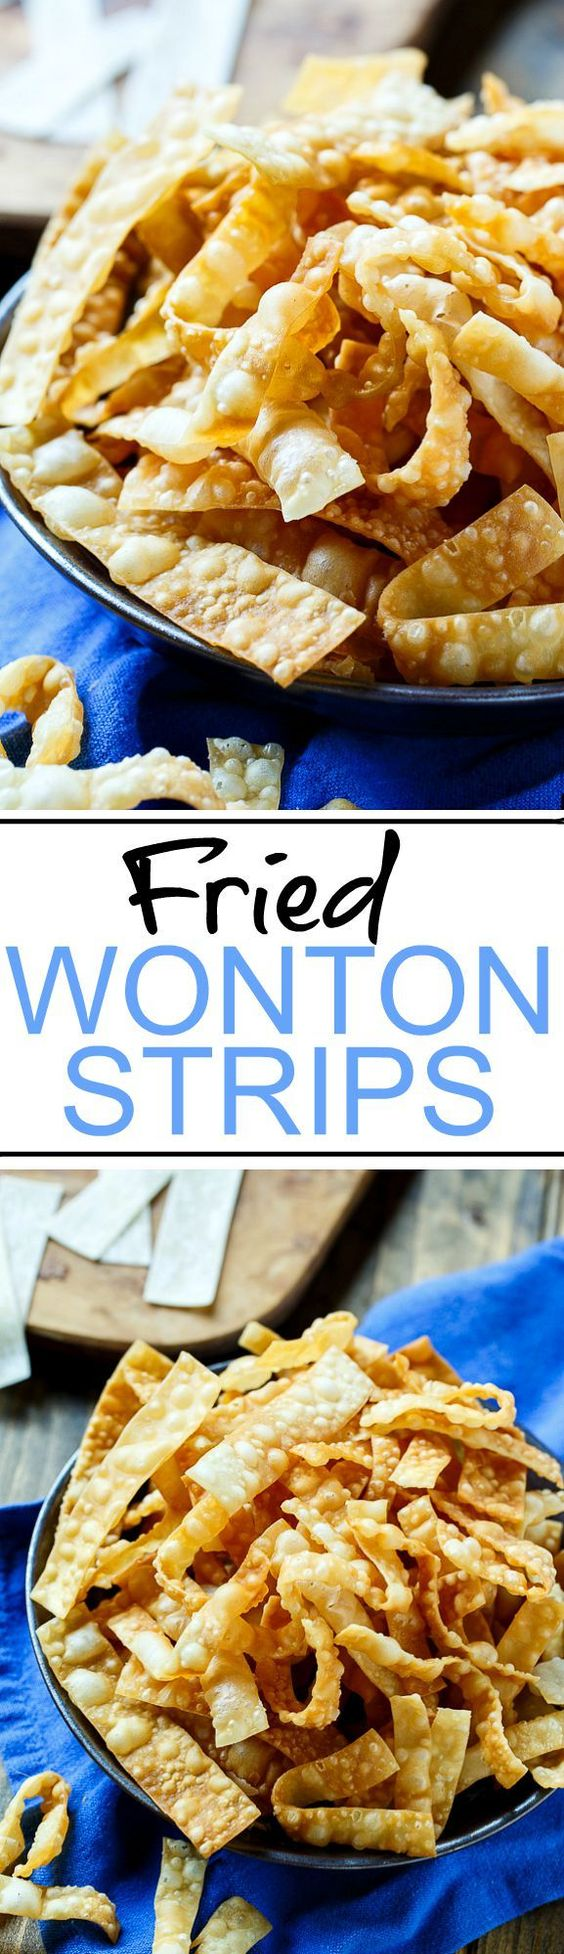 Fried Wonton Strips - Only 2 ingredients!